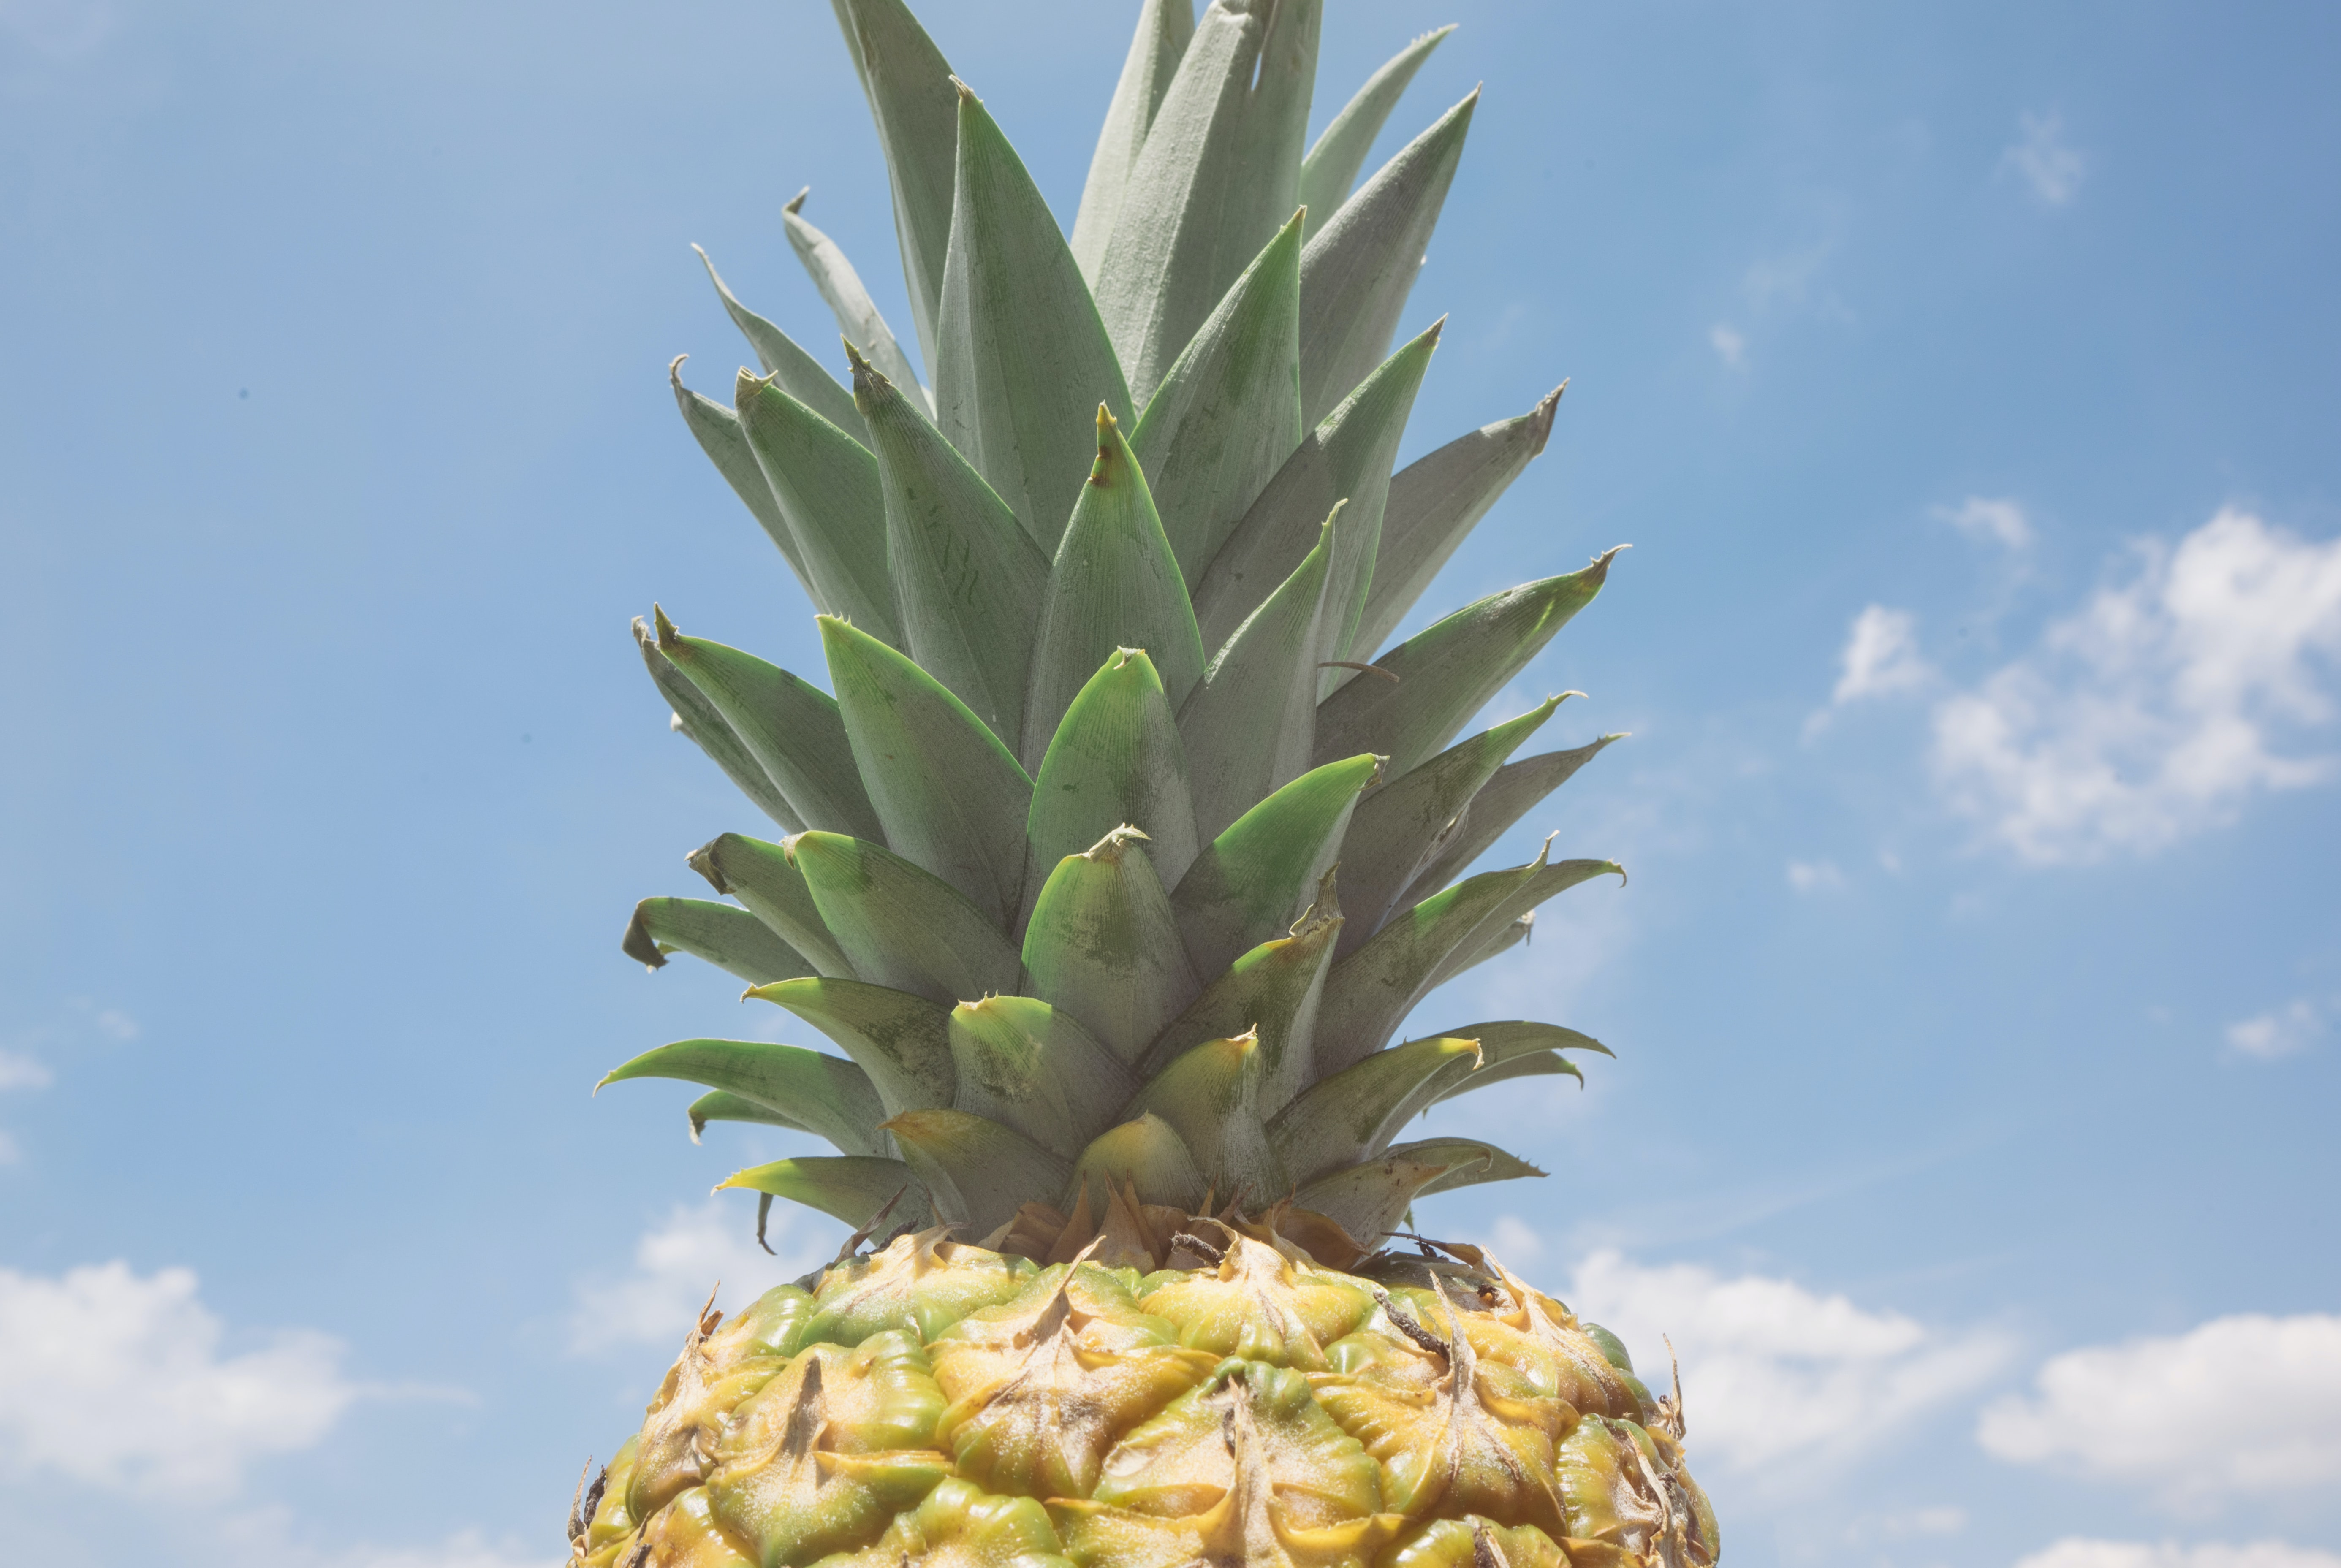 Top of a fresh pineapple against a blue sky